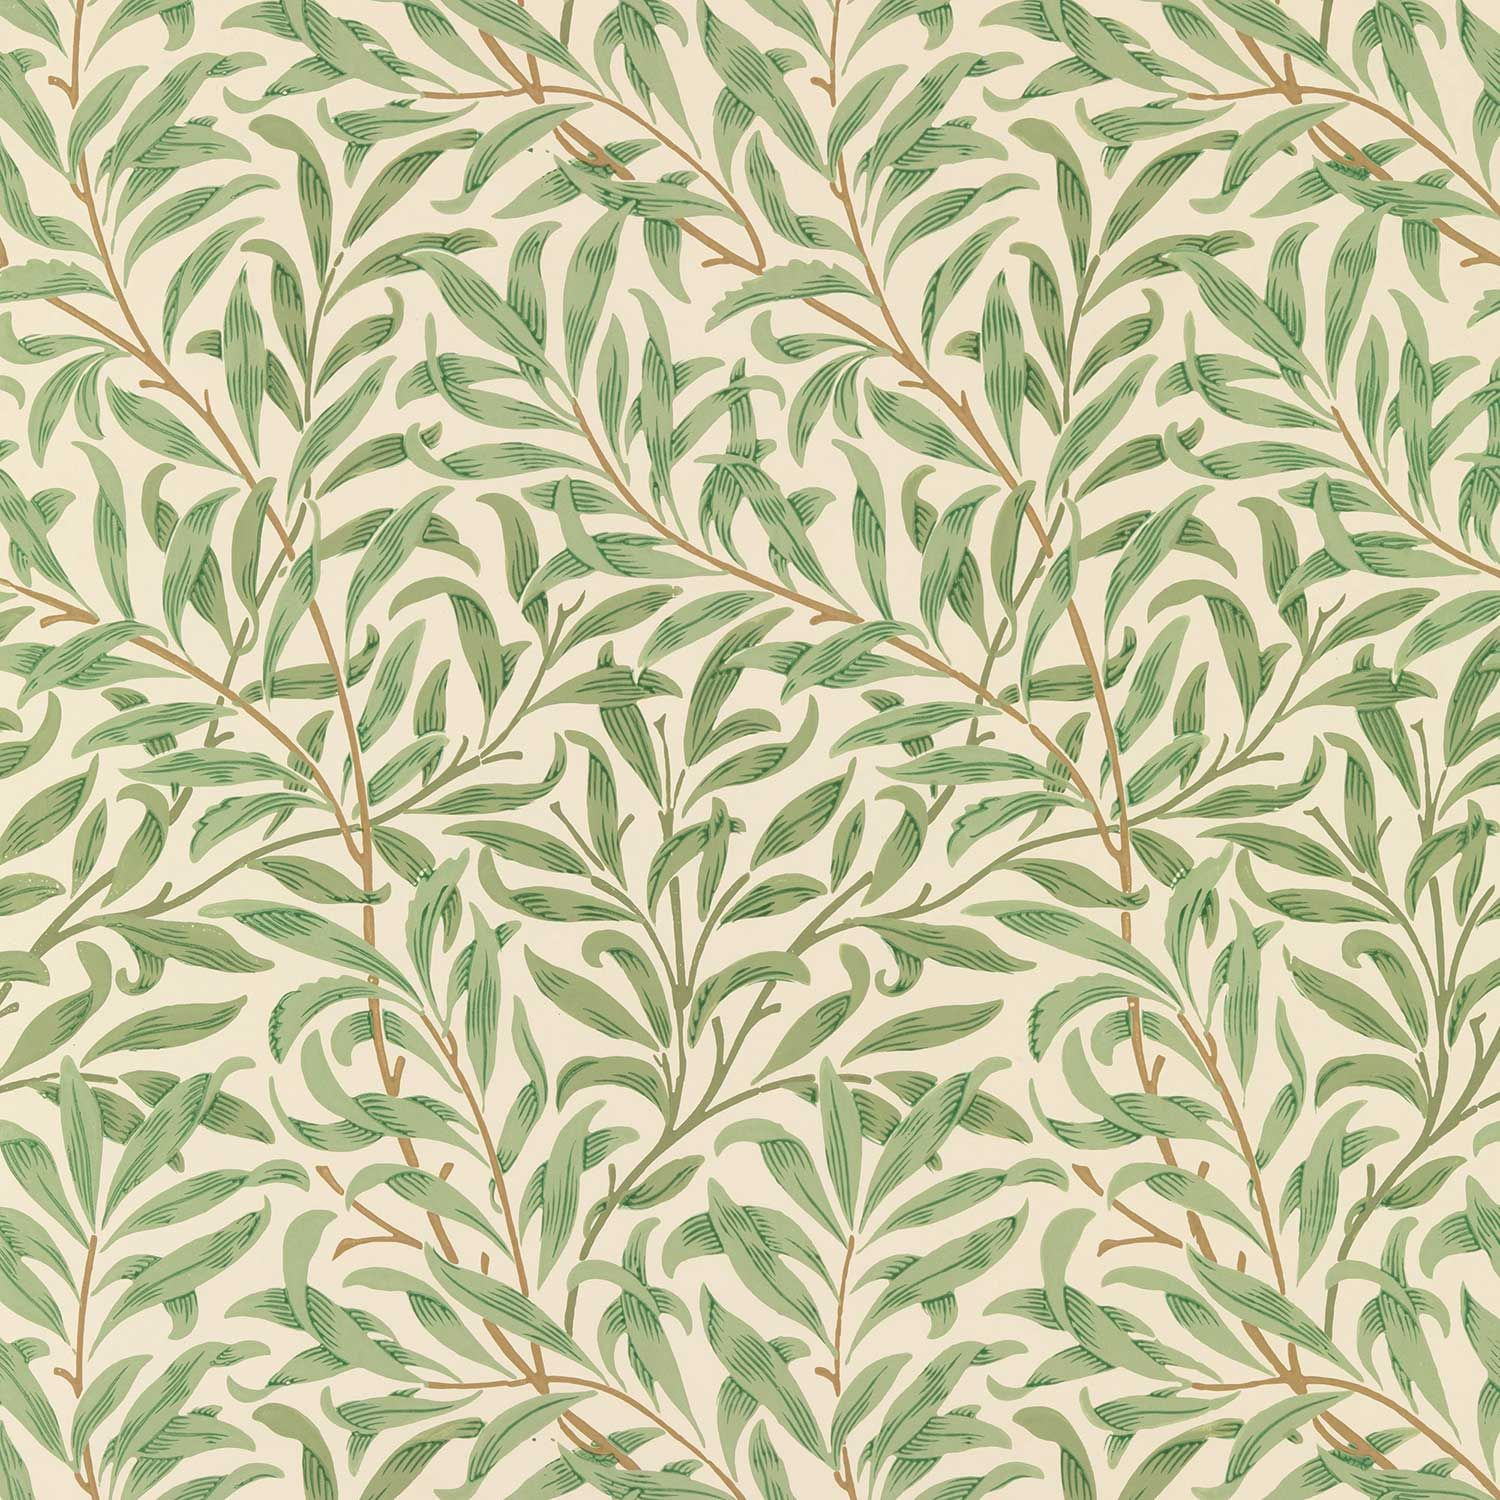 met_william_morris_1877_willow.jpg